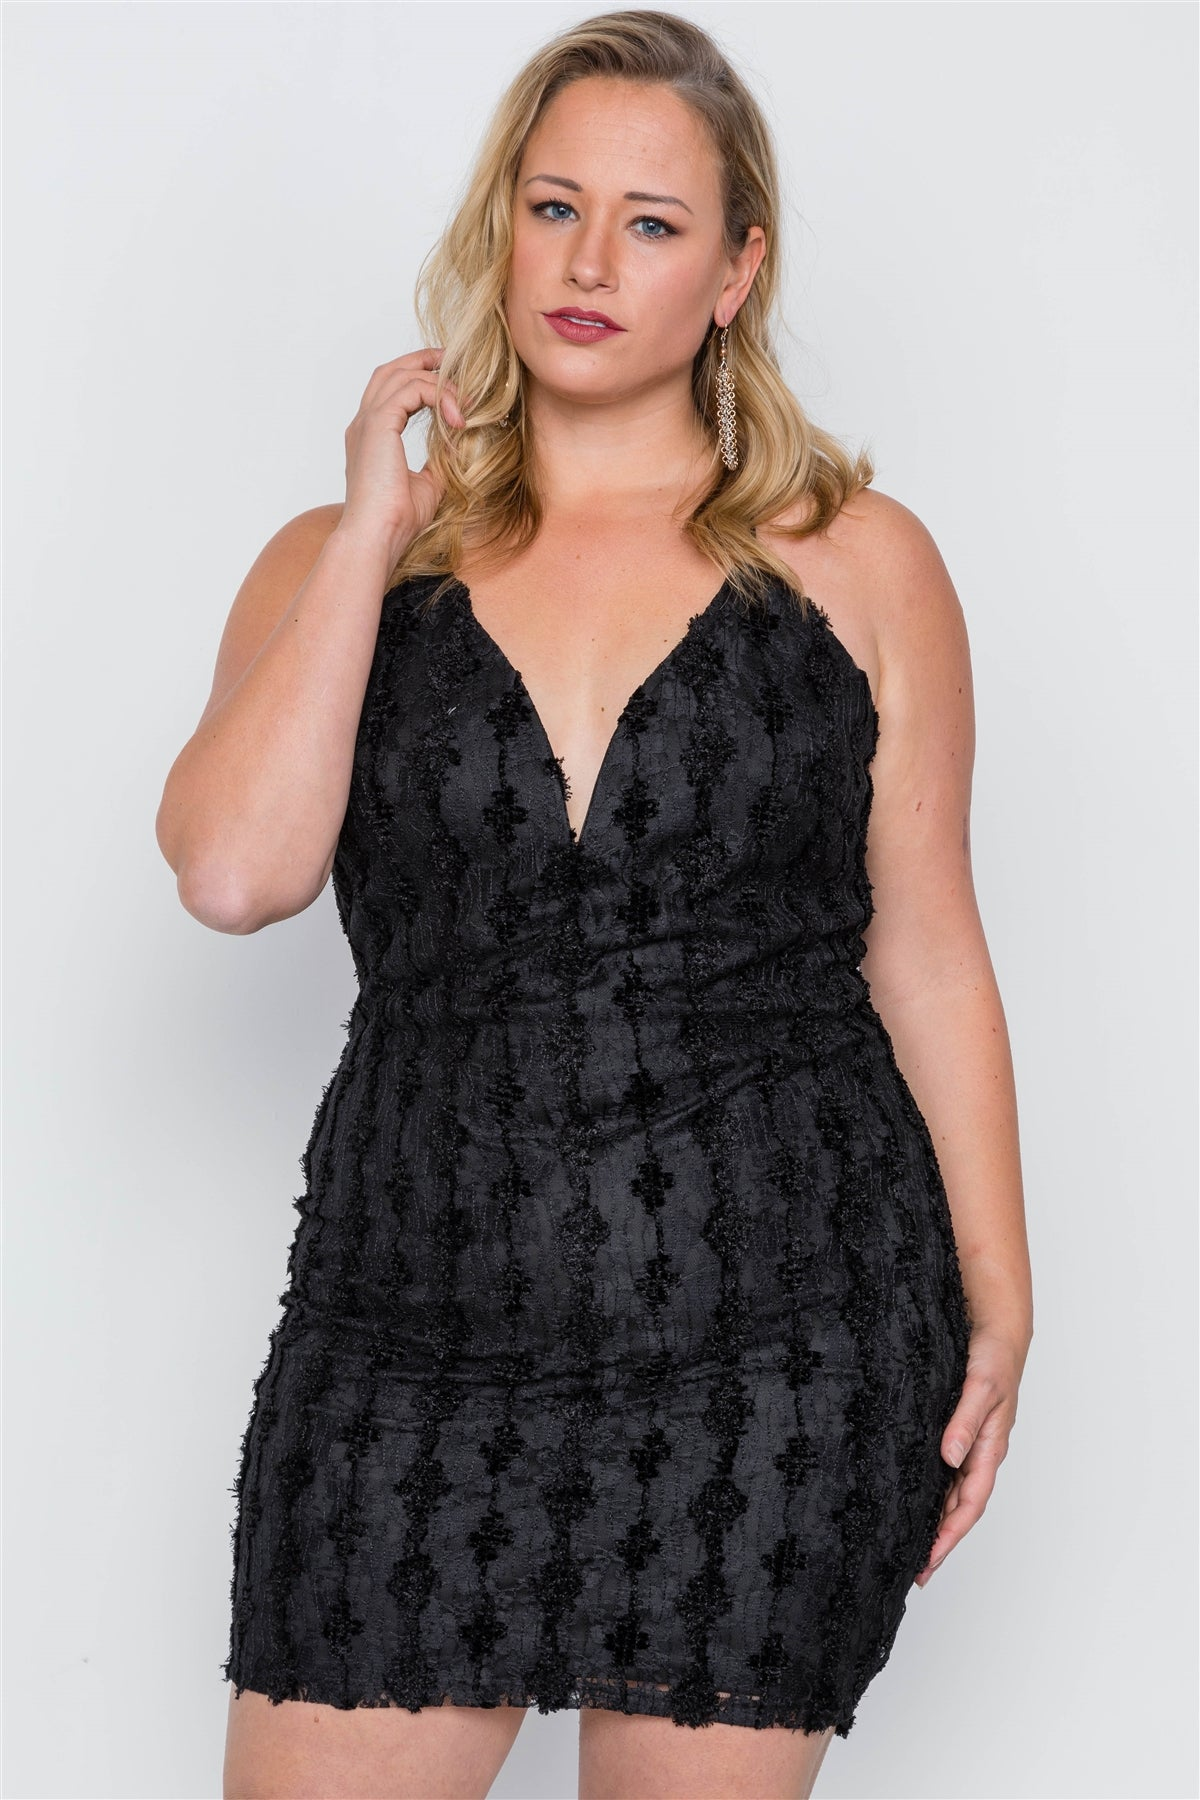 Plus Size Black Floral Lace Bodycon Cami Mini Dress - Boujee Boutique Incorporated